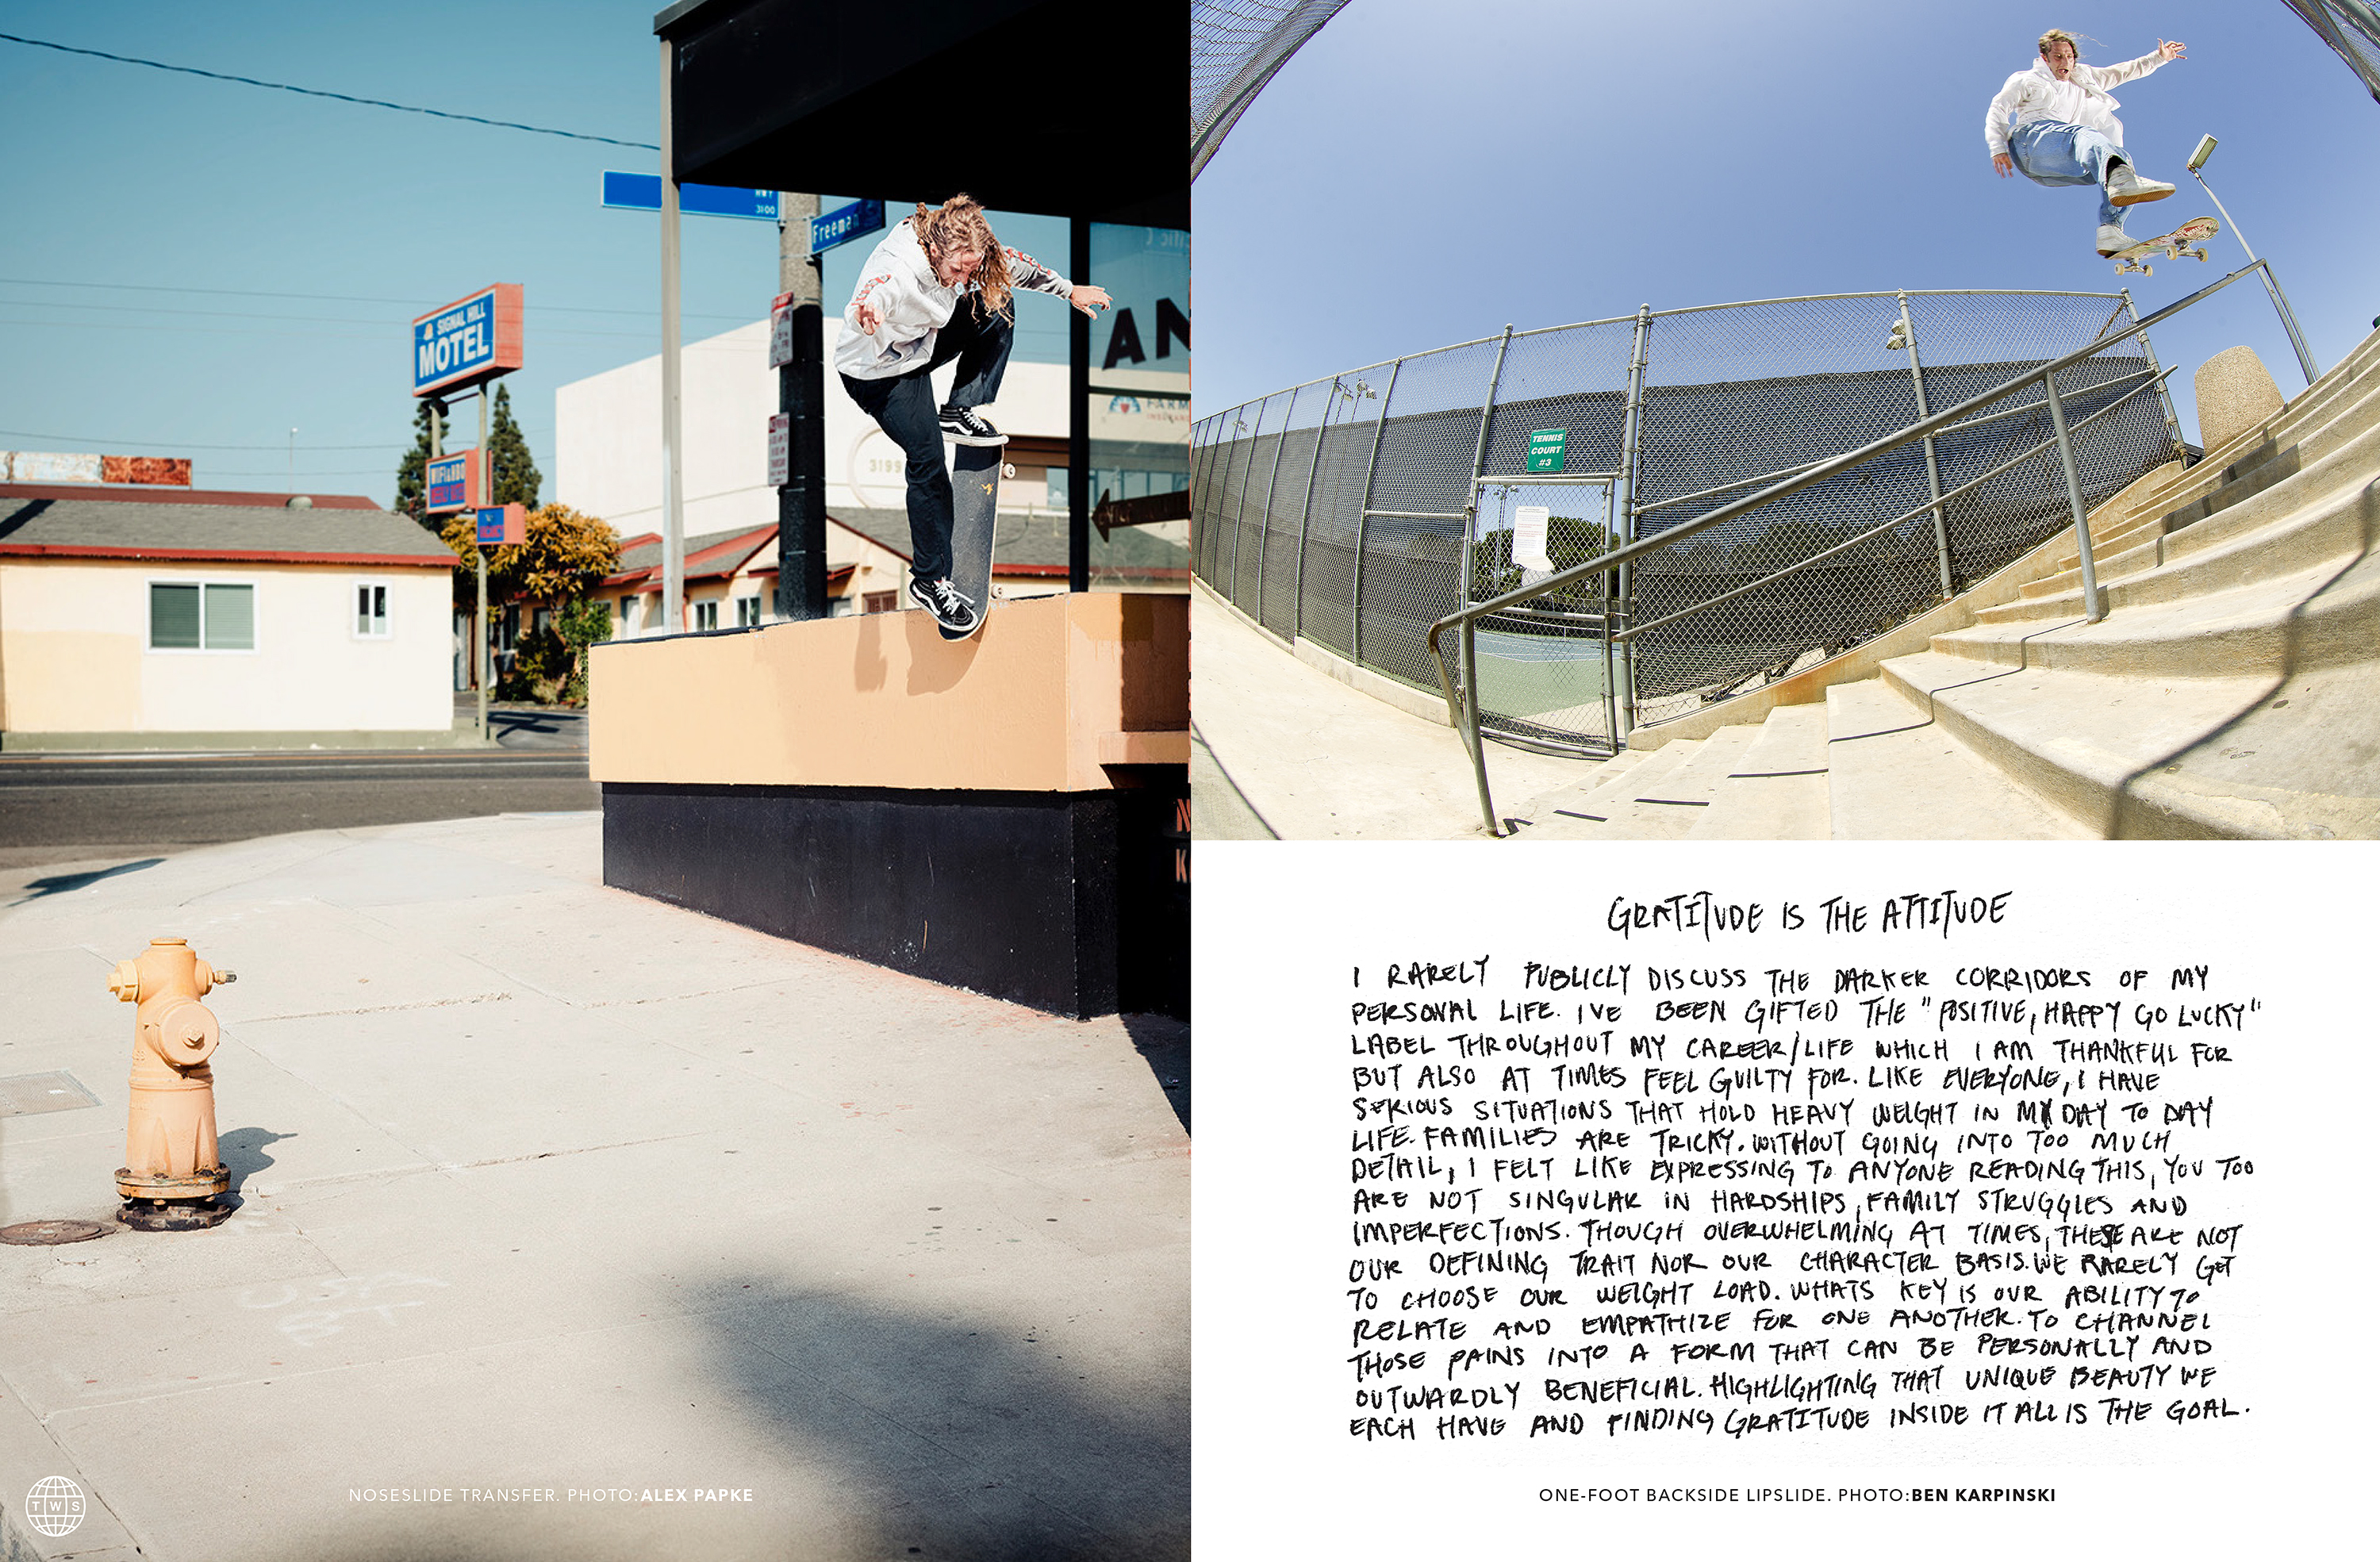 DANIEL_LUTHERAN_INTERVIEW_TEST 4